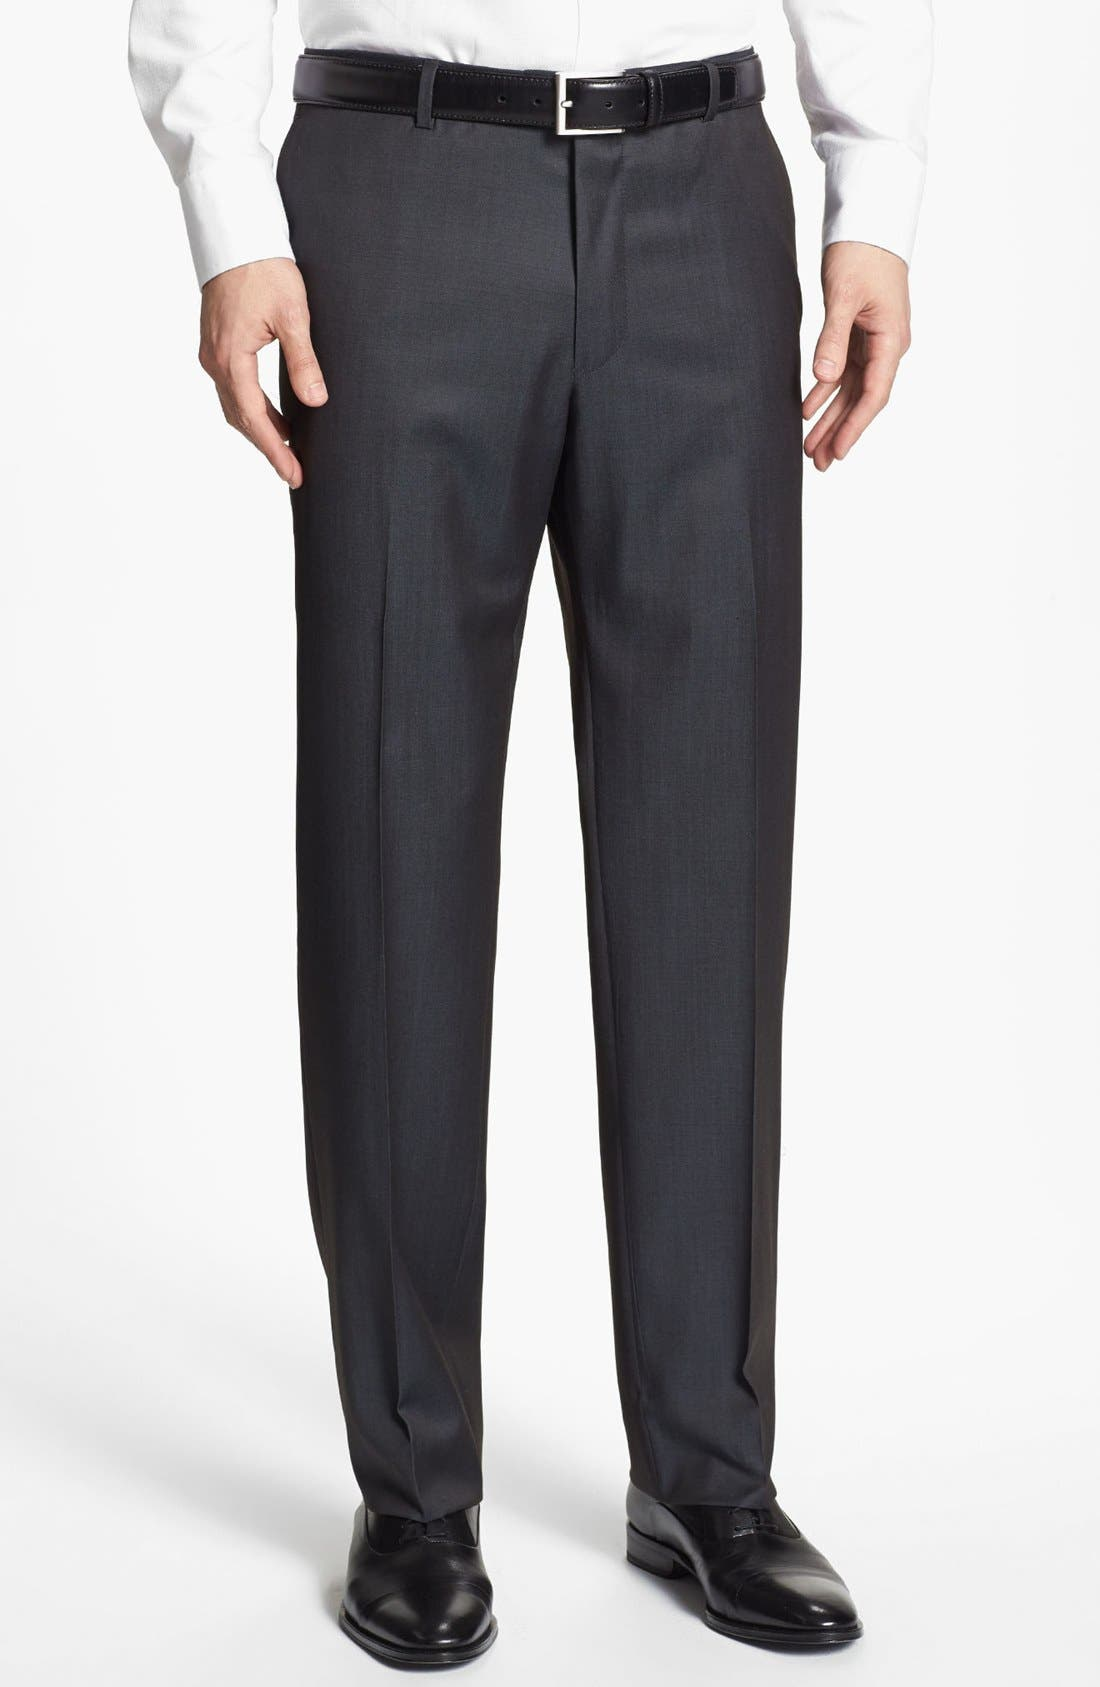 Main Image - Joseph Abboud Flat Front Trousers